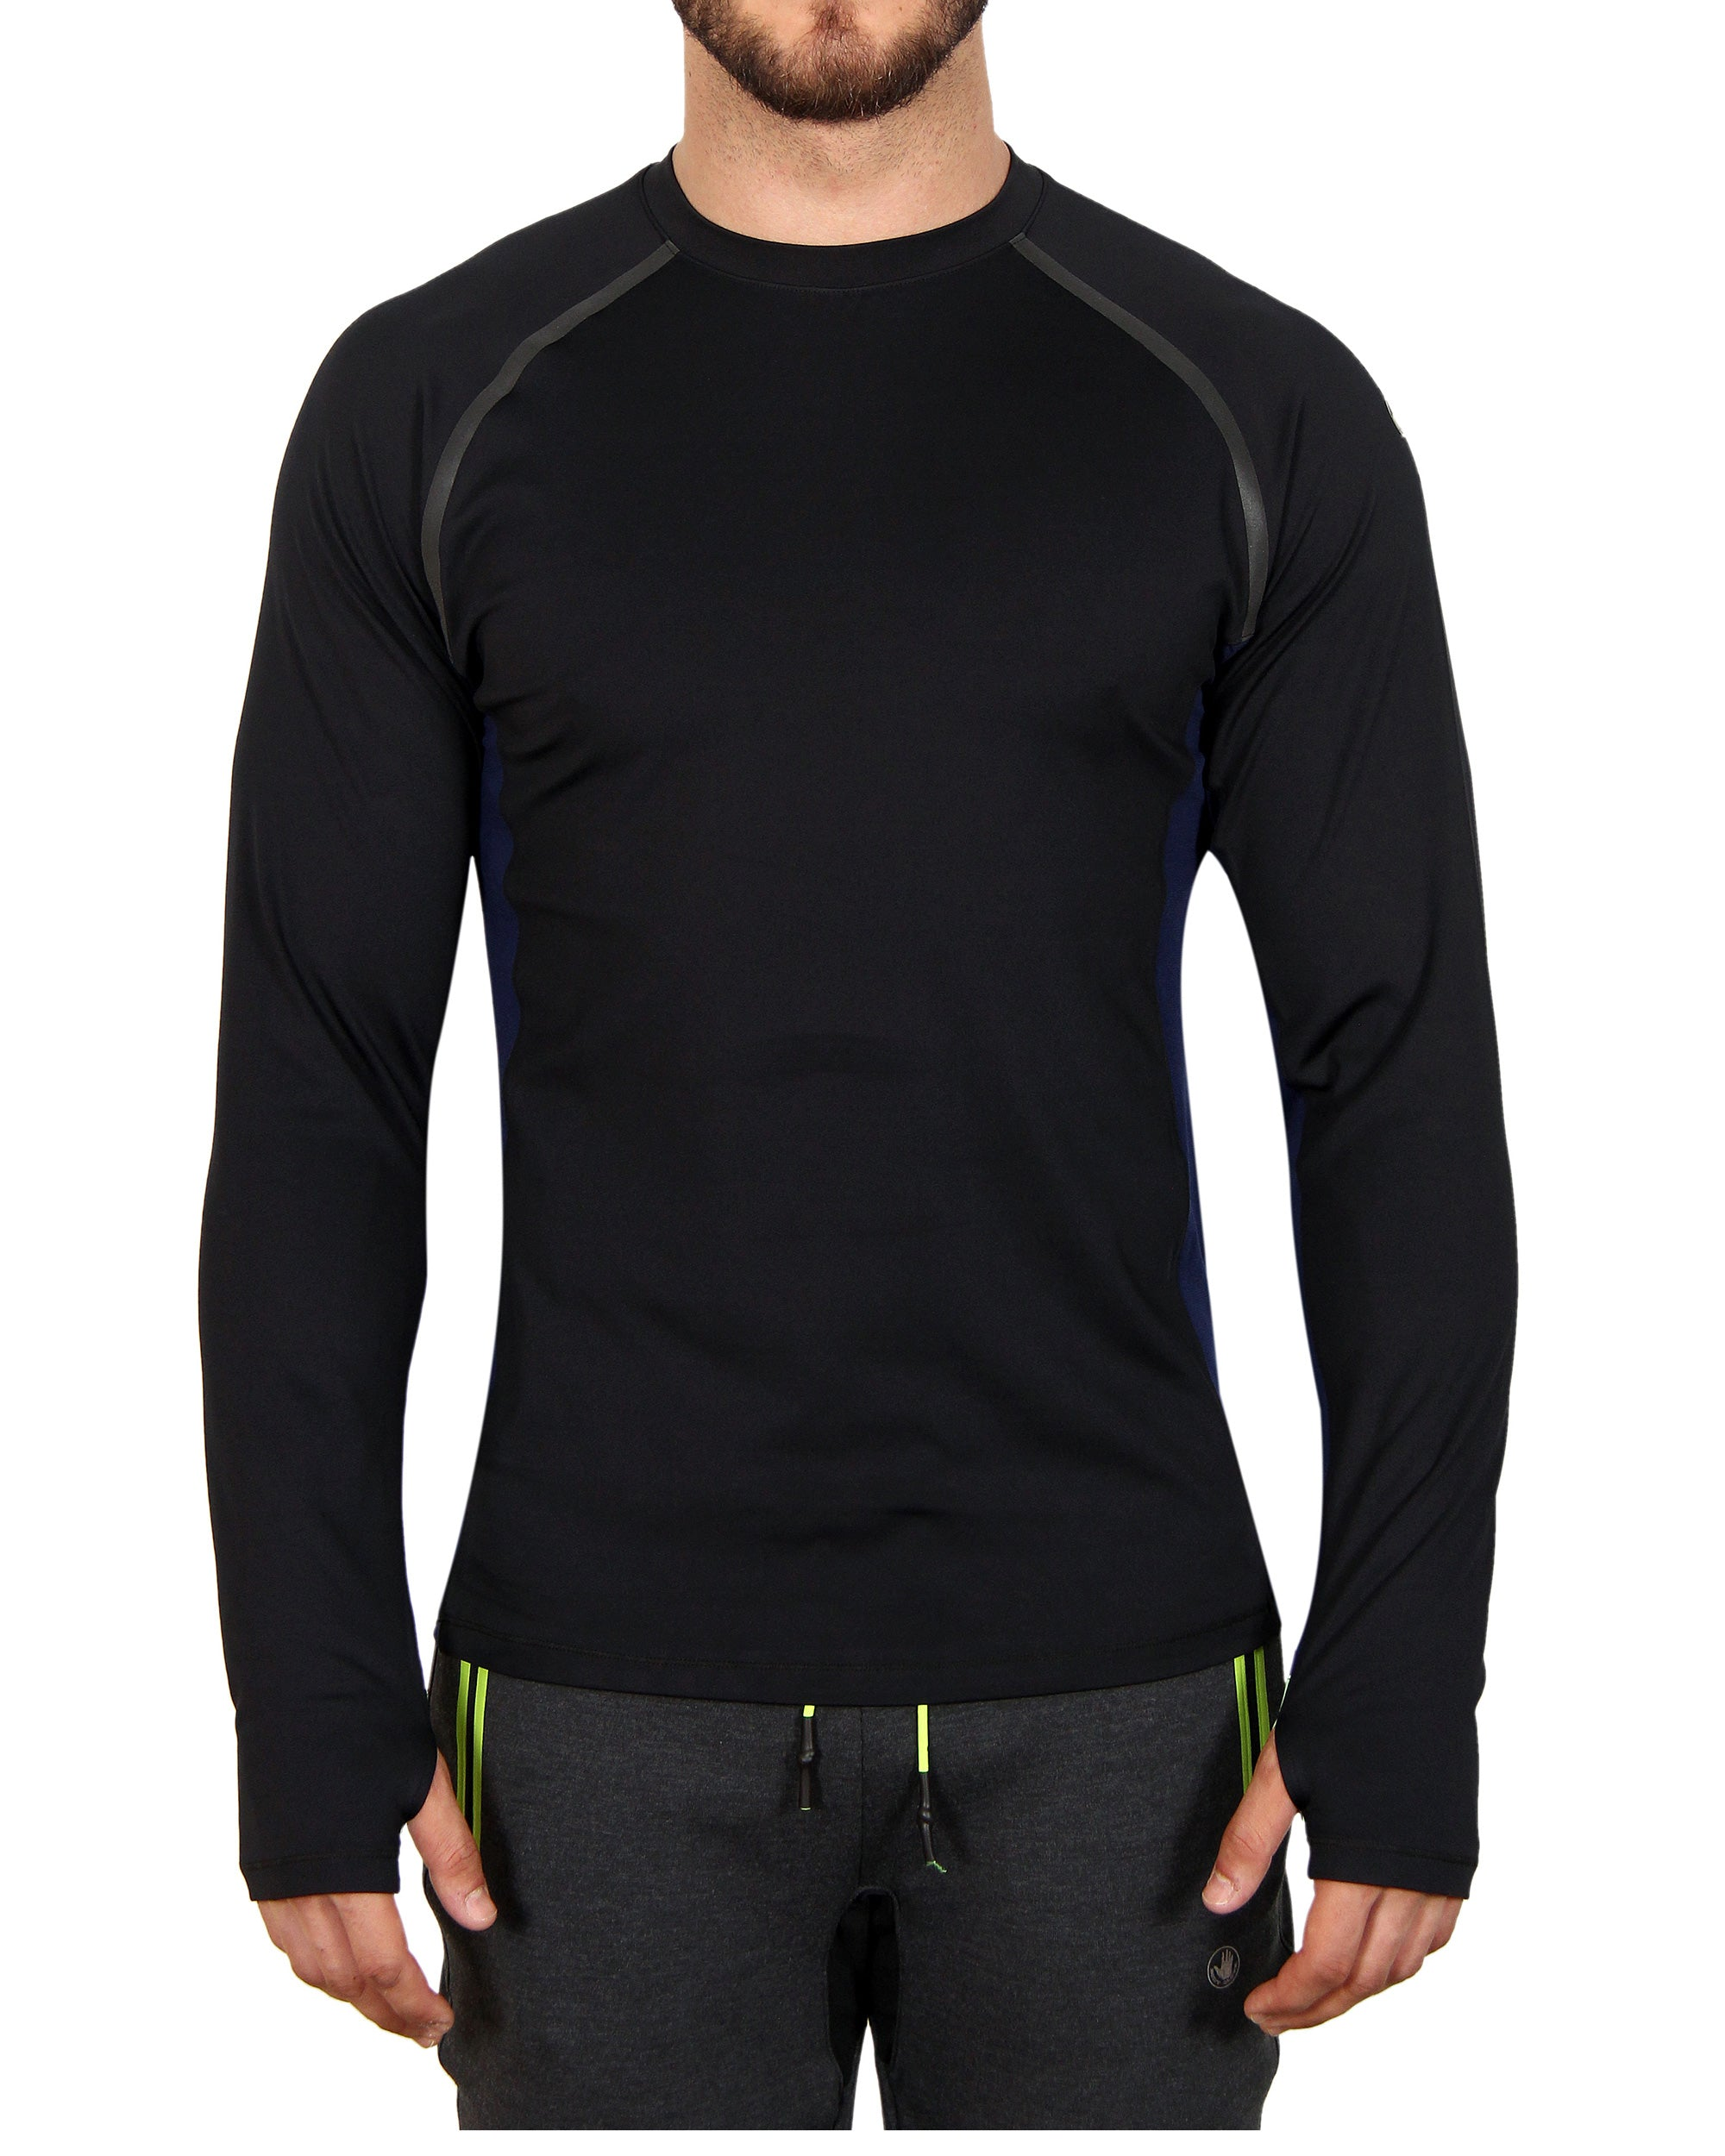 Men's Long-Sleeved Performance Tee - Black